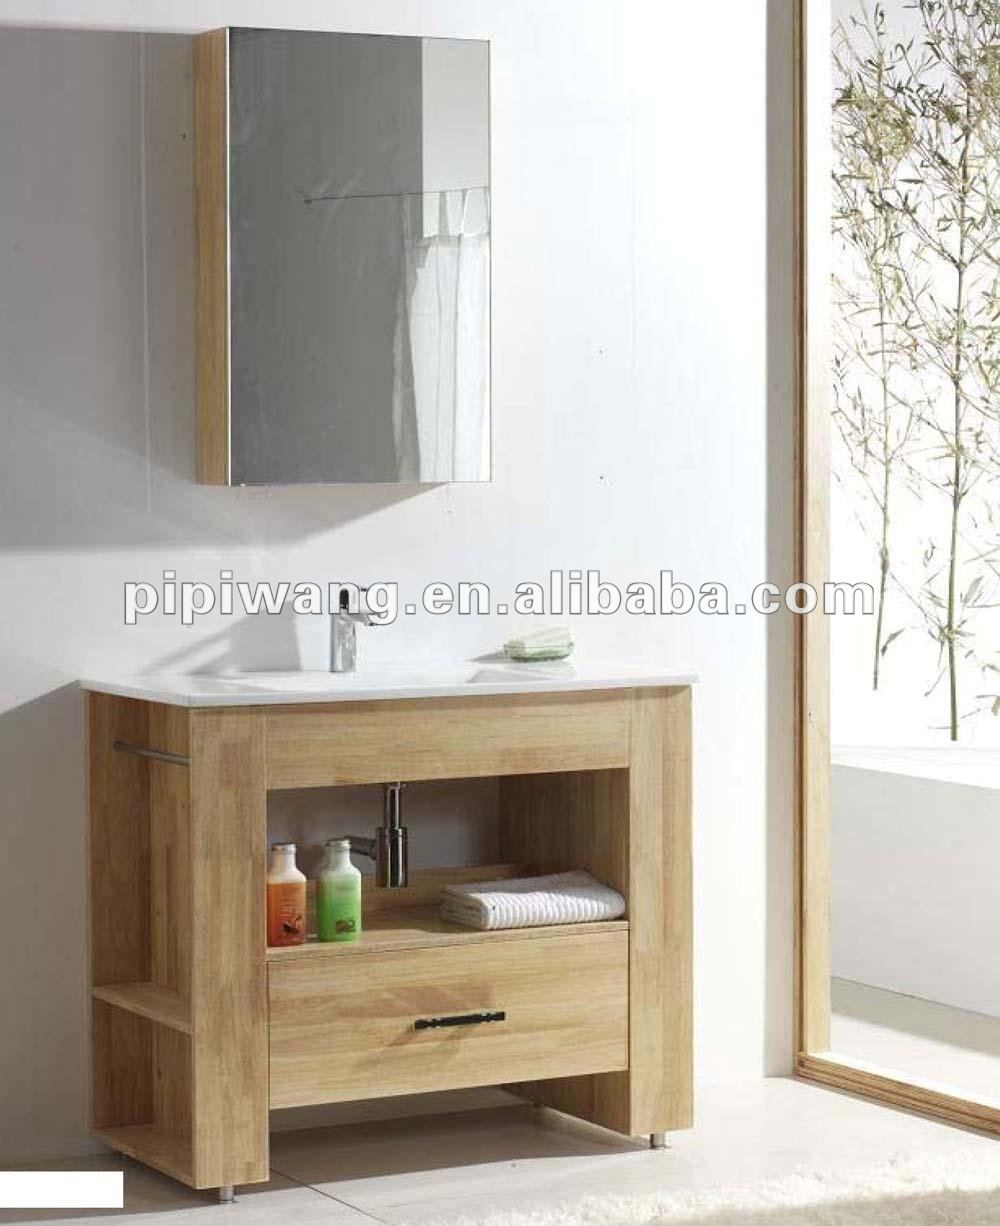 Teak Solid Wood Bathroom Furniture Buy Teak Wood Bathroom Furniture